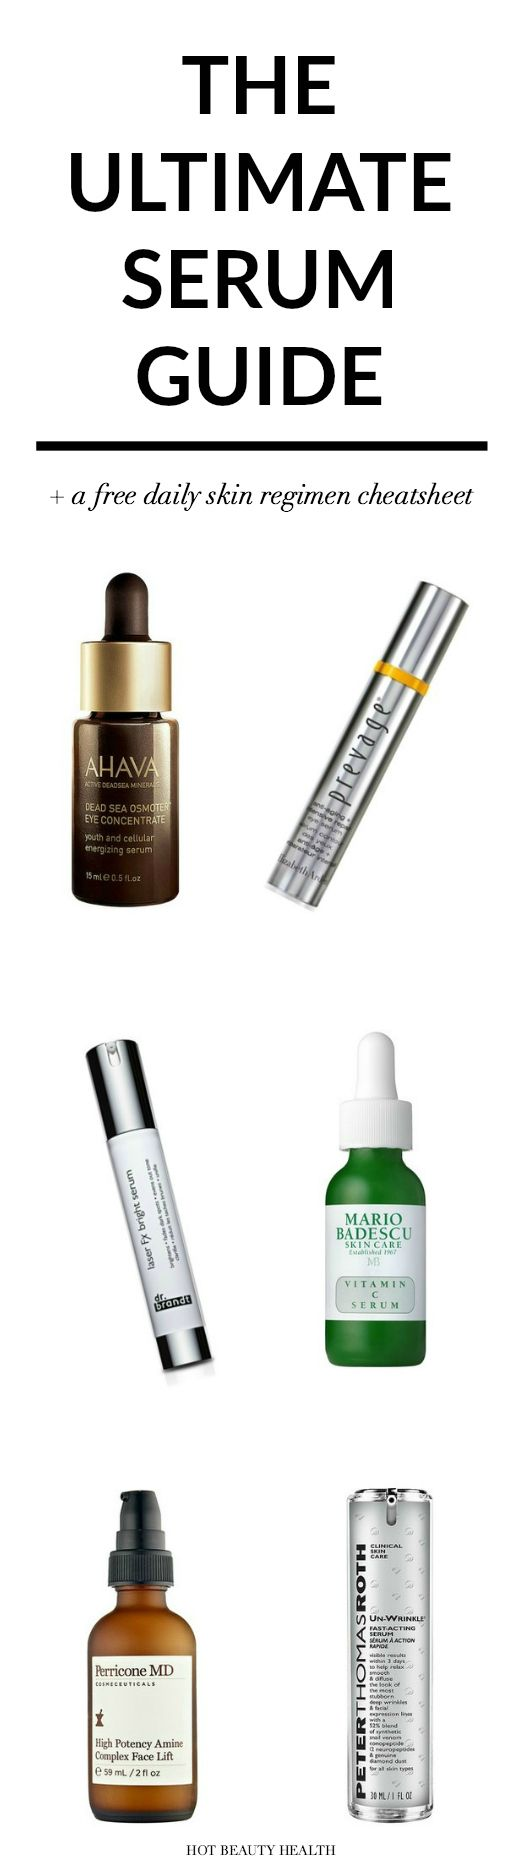 The Ultimate Face Serum Guide + Download a free daily skincare regimen cheatsheet to help with your skincare routine.